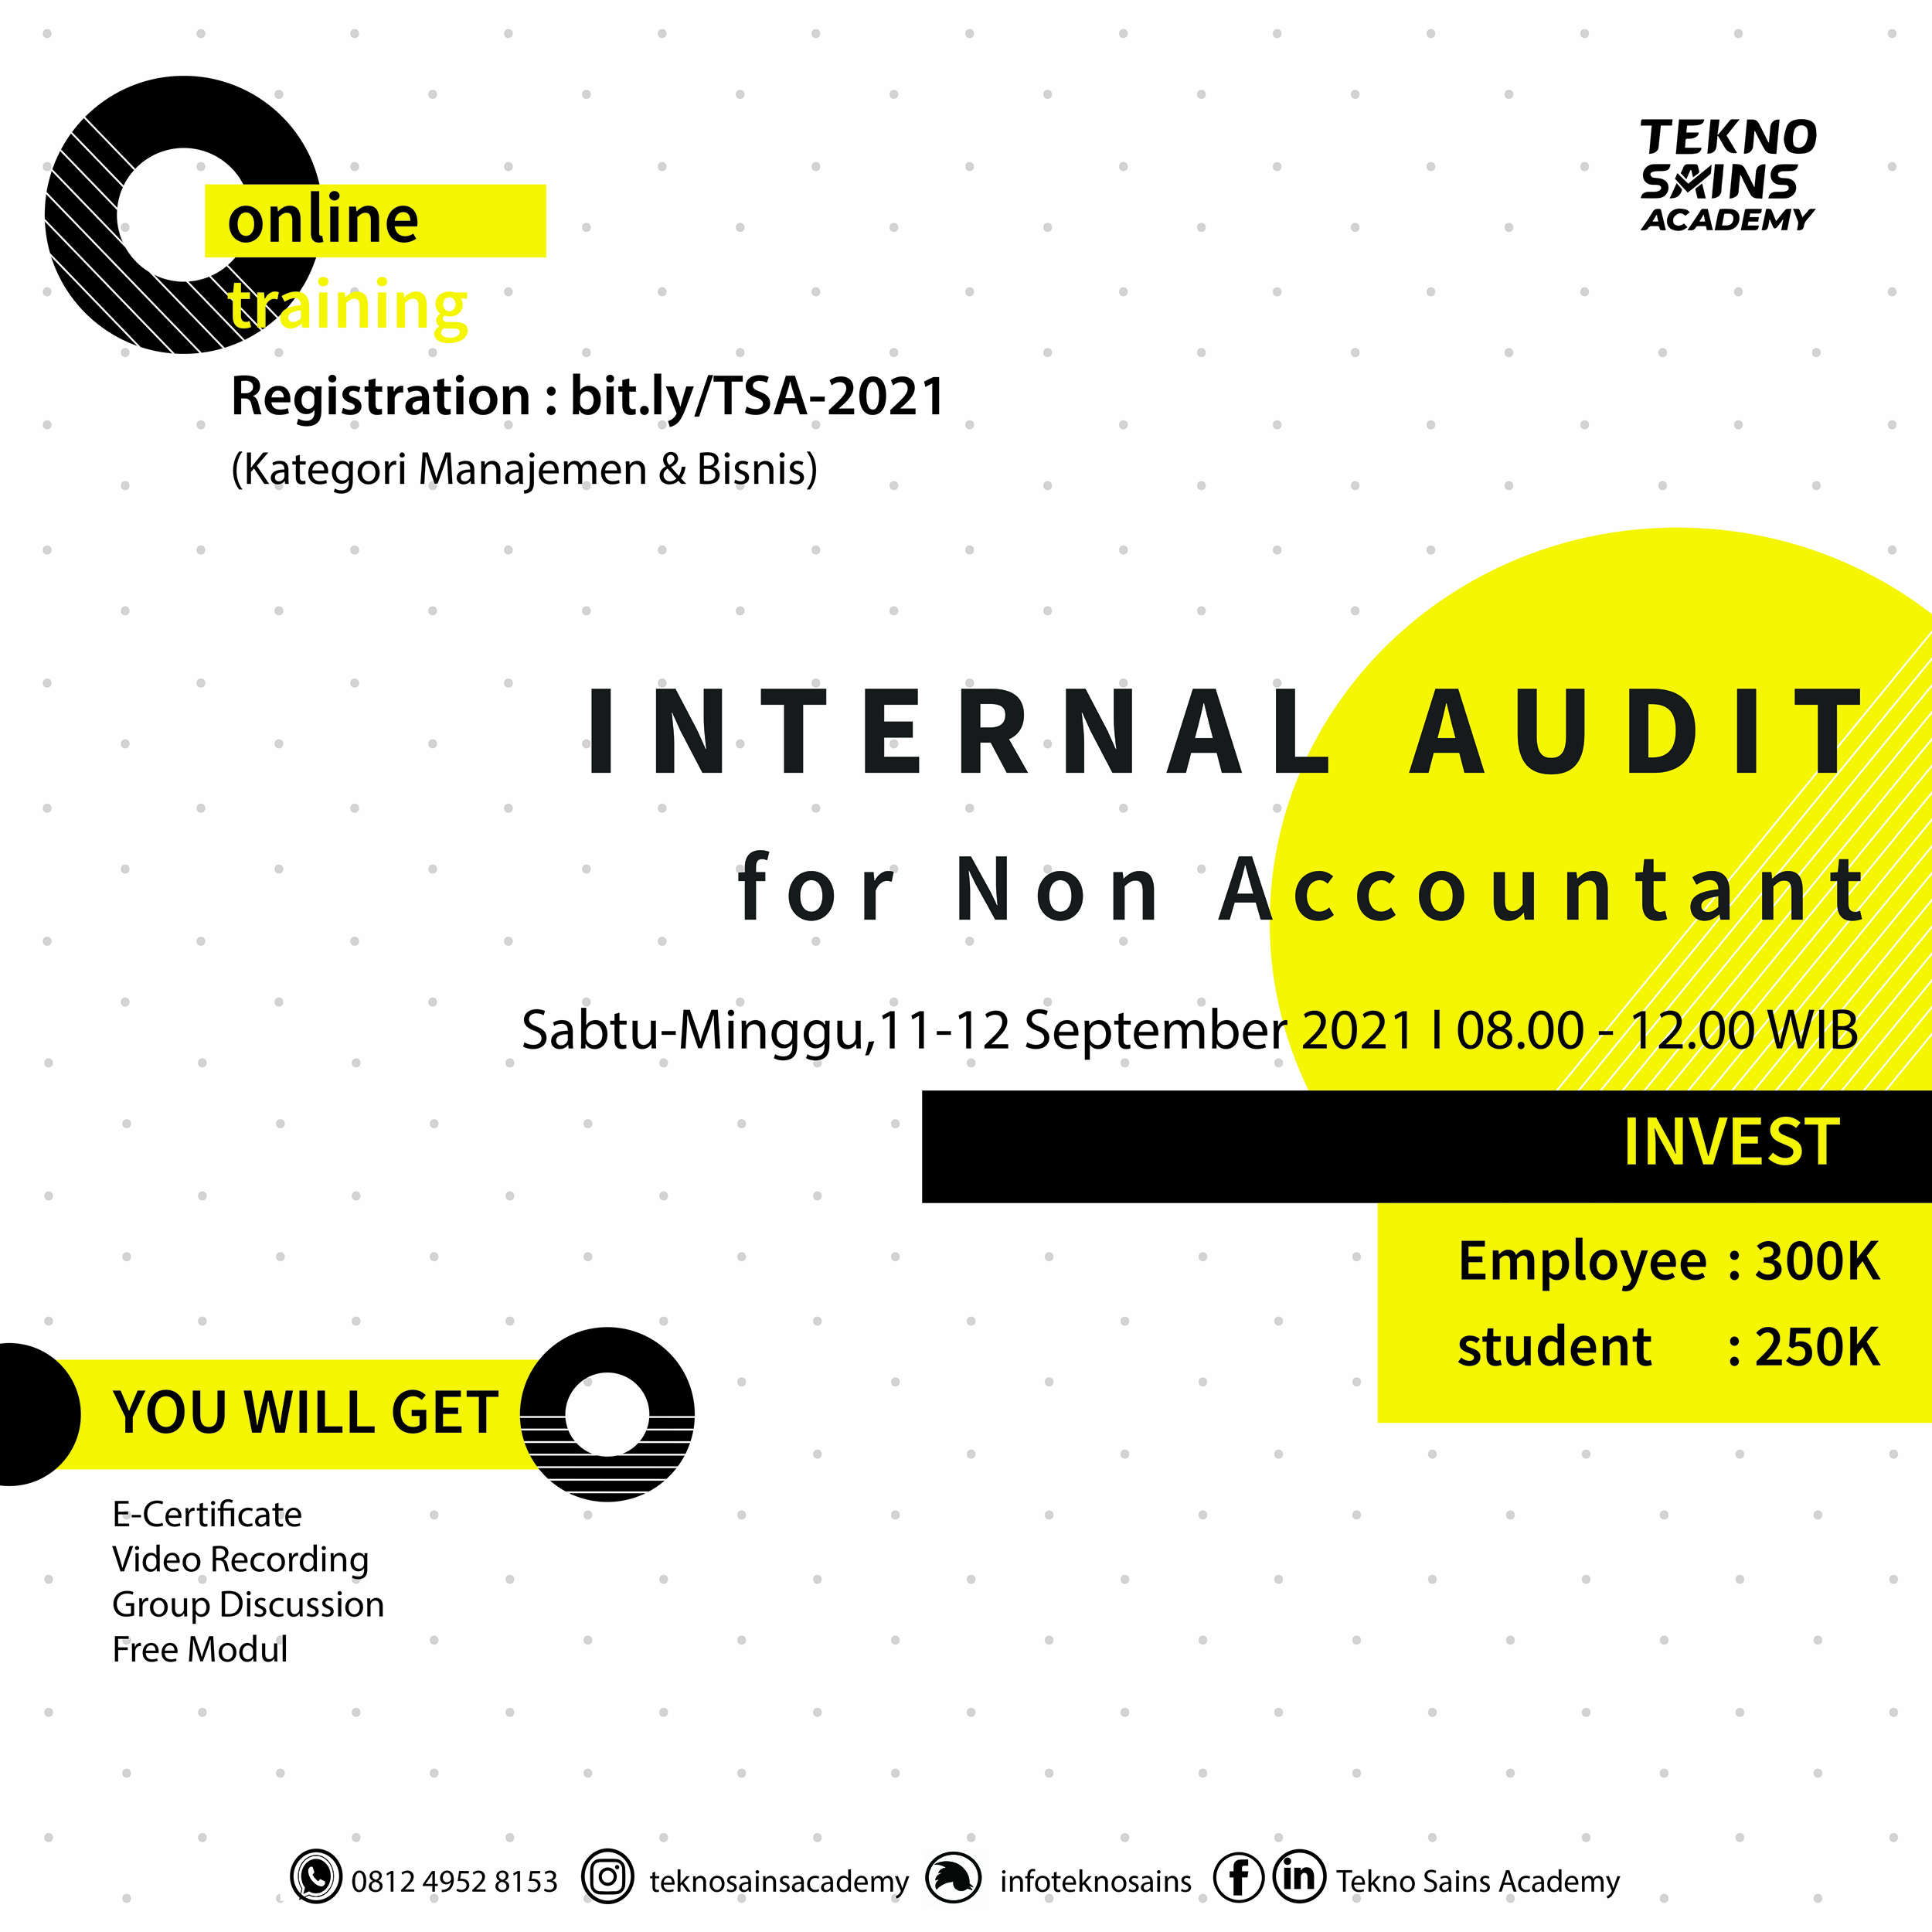 202108012-00-Internal Audit for Non Accountant 1